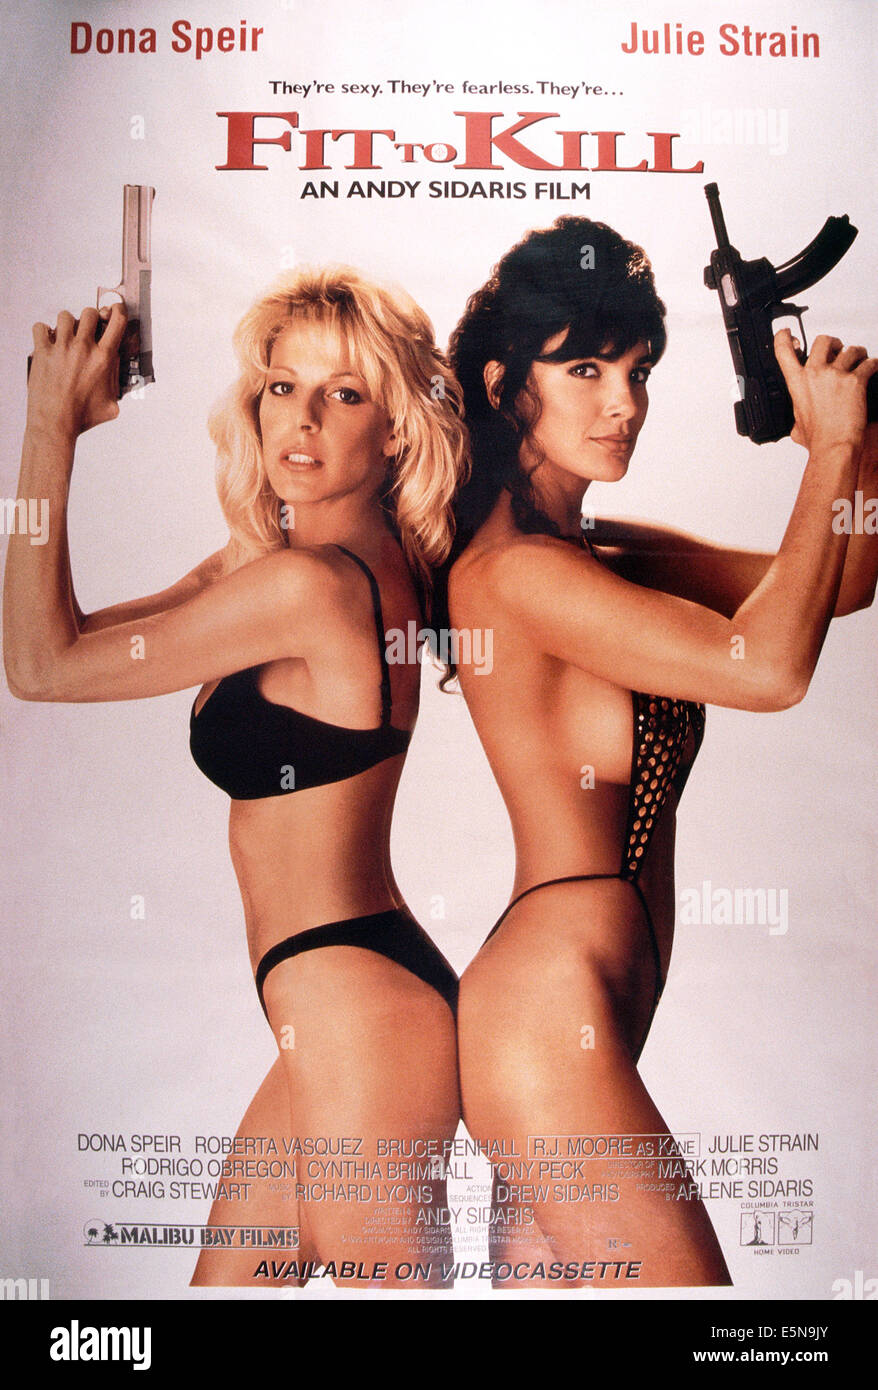 FIT TO KILL, from left: Dona Speir, Julie Strain, 1993, © Malibu Bay Films/courtesy Everett Collection - Stock Image